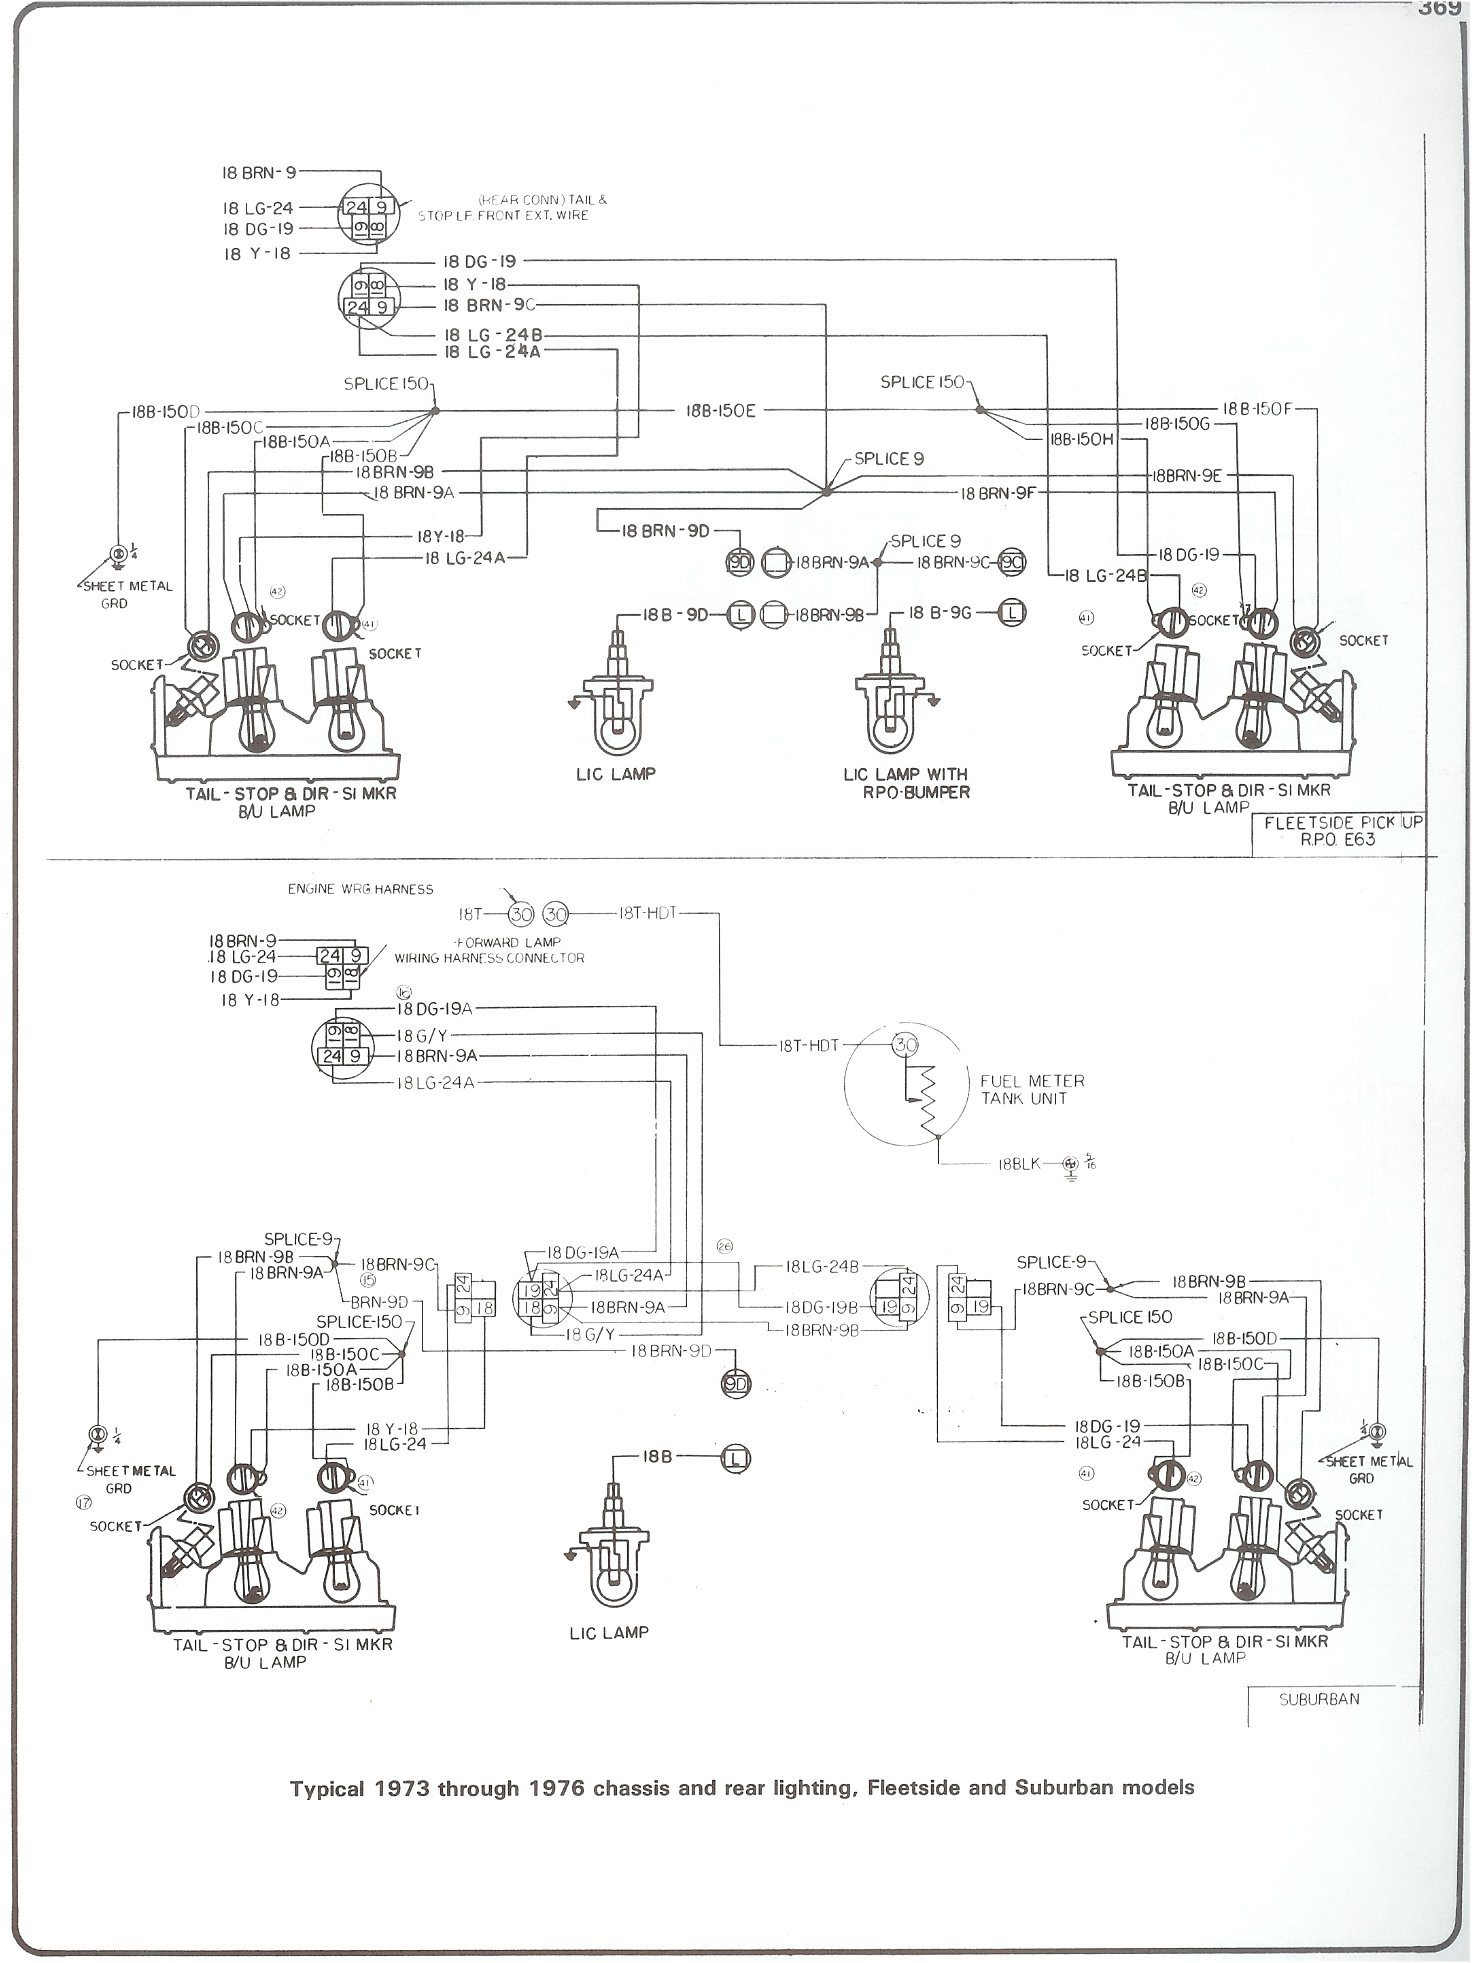 Complete 73-87 Wiring Diagrams on chevy truck heater control, chevy truck brake switch, chevy truck rear differential, chevy truck leather seat covers, chevy truck clutch rod, chevy truck gps antenna, chevy truck shift linkage bushing, chevy truck throttle cables, chevy truck conversion kit, chevy truck alternator wiring, chevy truck color codes, chevy truck speaker grill, chevy truck temp sensor, chevy truck air cleaner assembly, chevy truck wiring diagram, chevy truck front fender, chevy truck starter wiring, chevy truck interior trim parts,